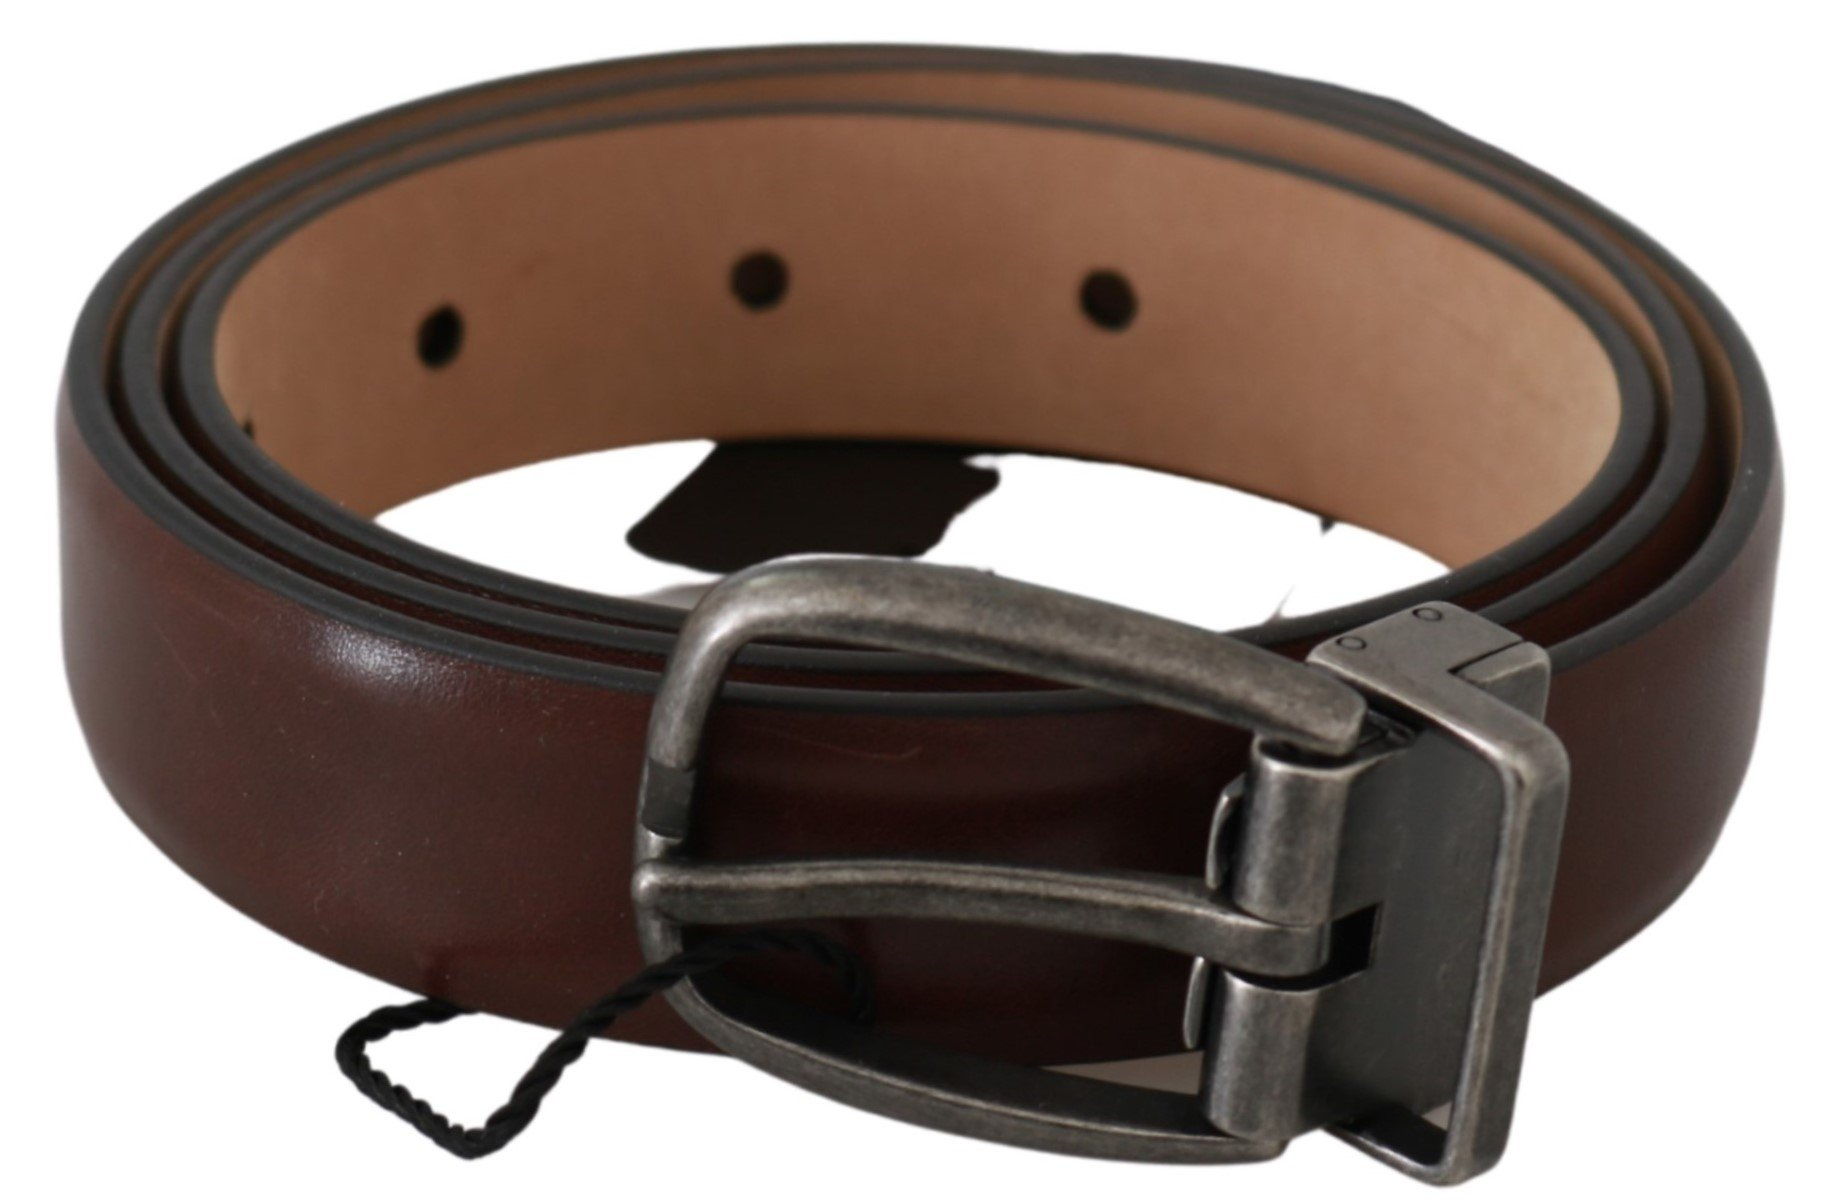 Dolce & Gabbana Men's Leather Oval Buckle Belt Brown BEL60626 - 85 cm / 34 Inches